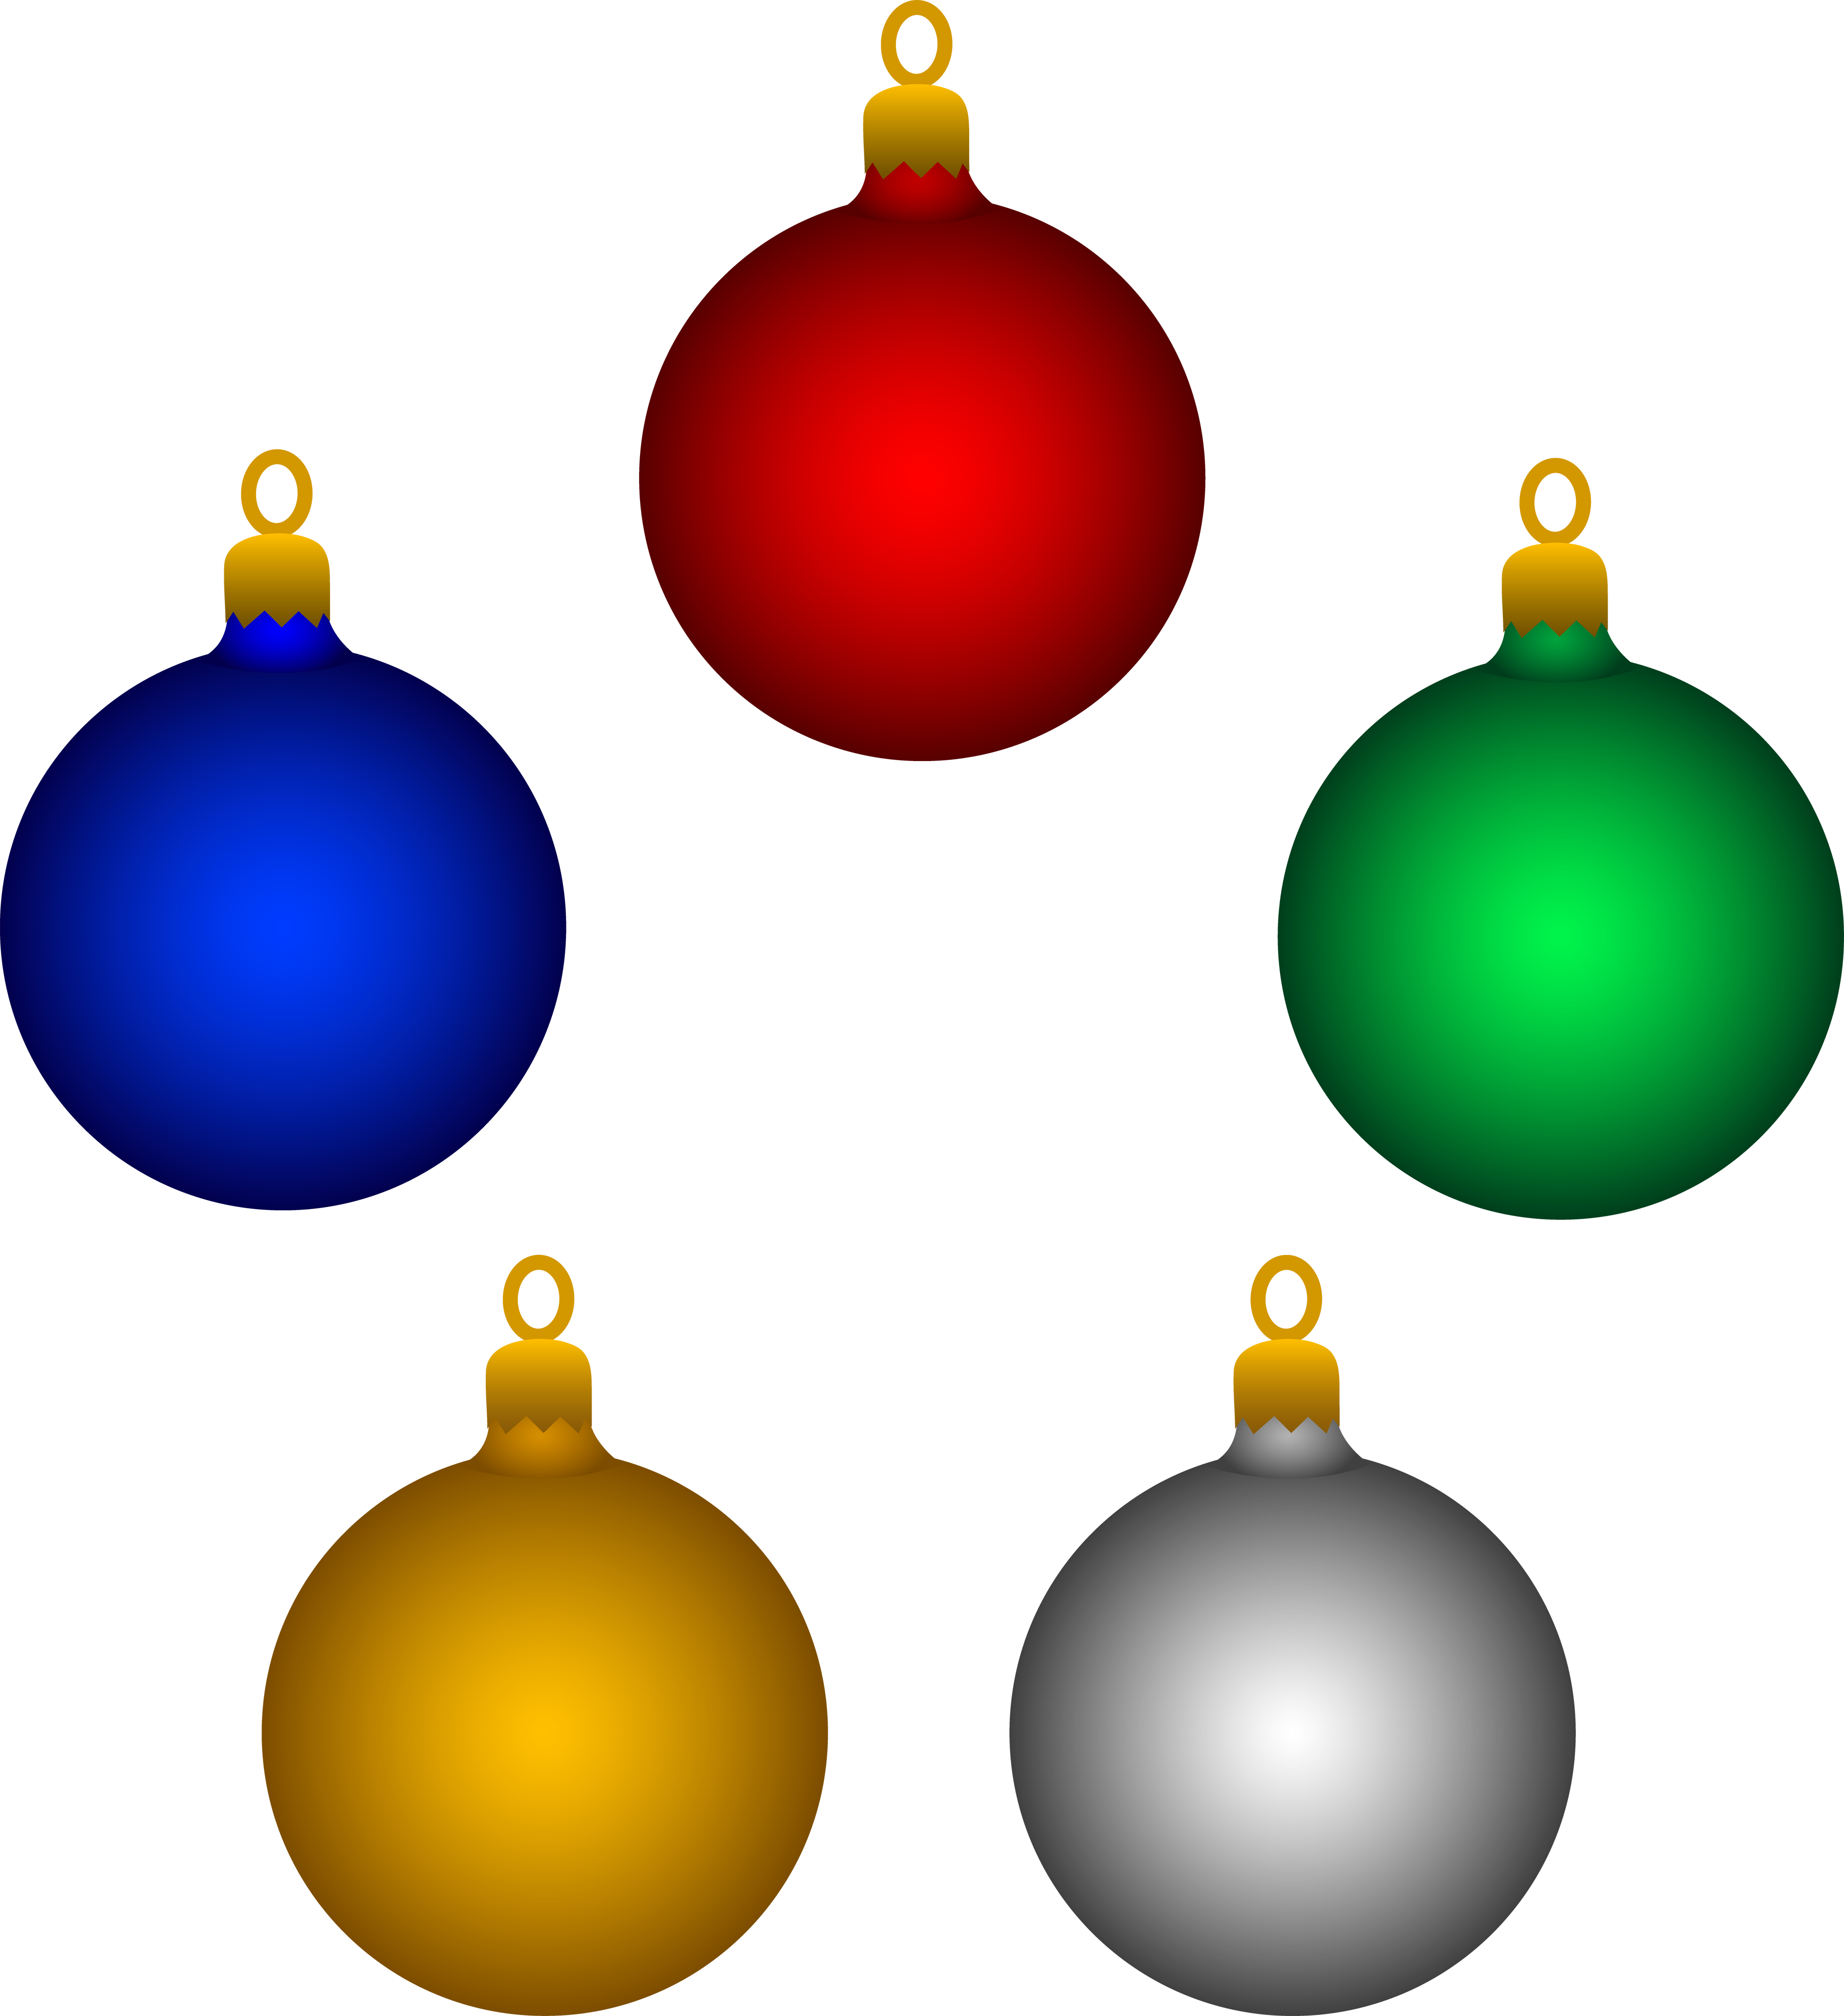 Free christmas clipart ornaments vector royalty free library Free Christmas Balls Clipart, Download Free Clip Art, Free Clip Art ... vector royalty free library